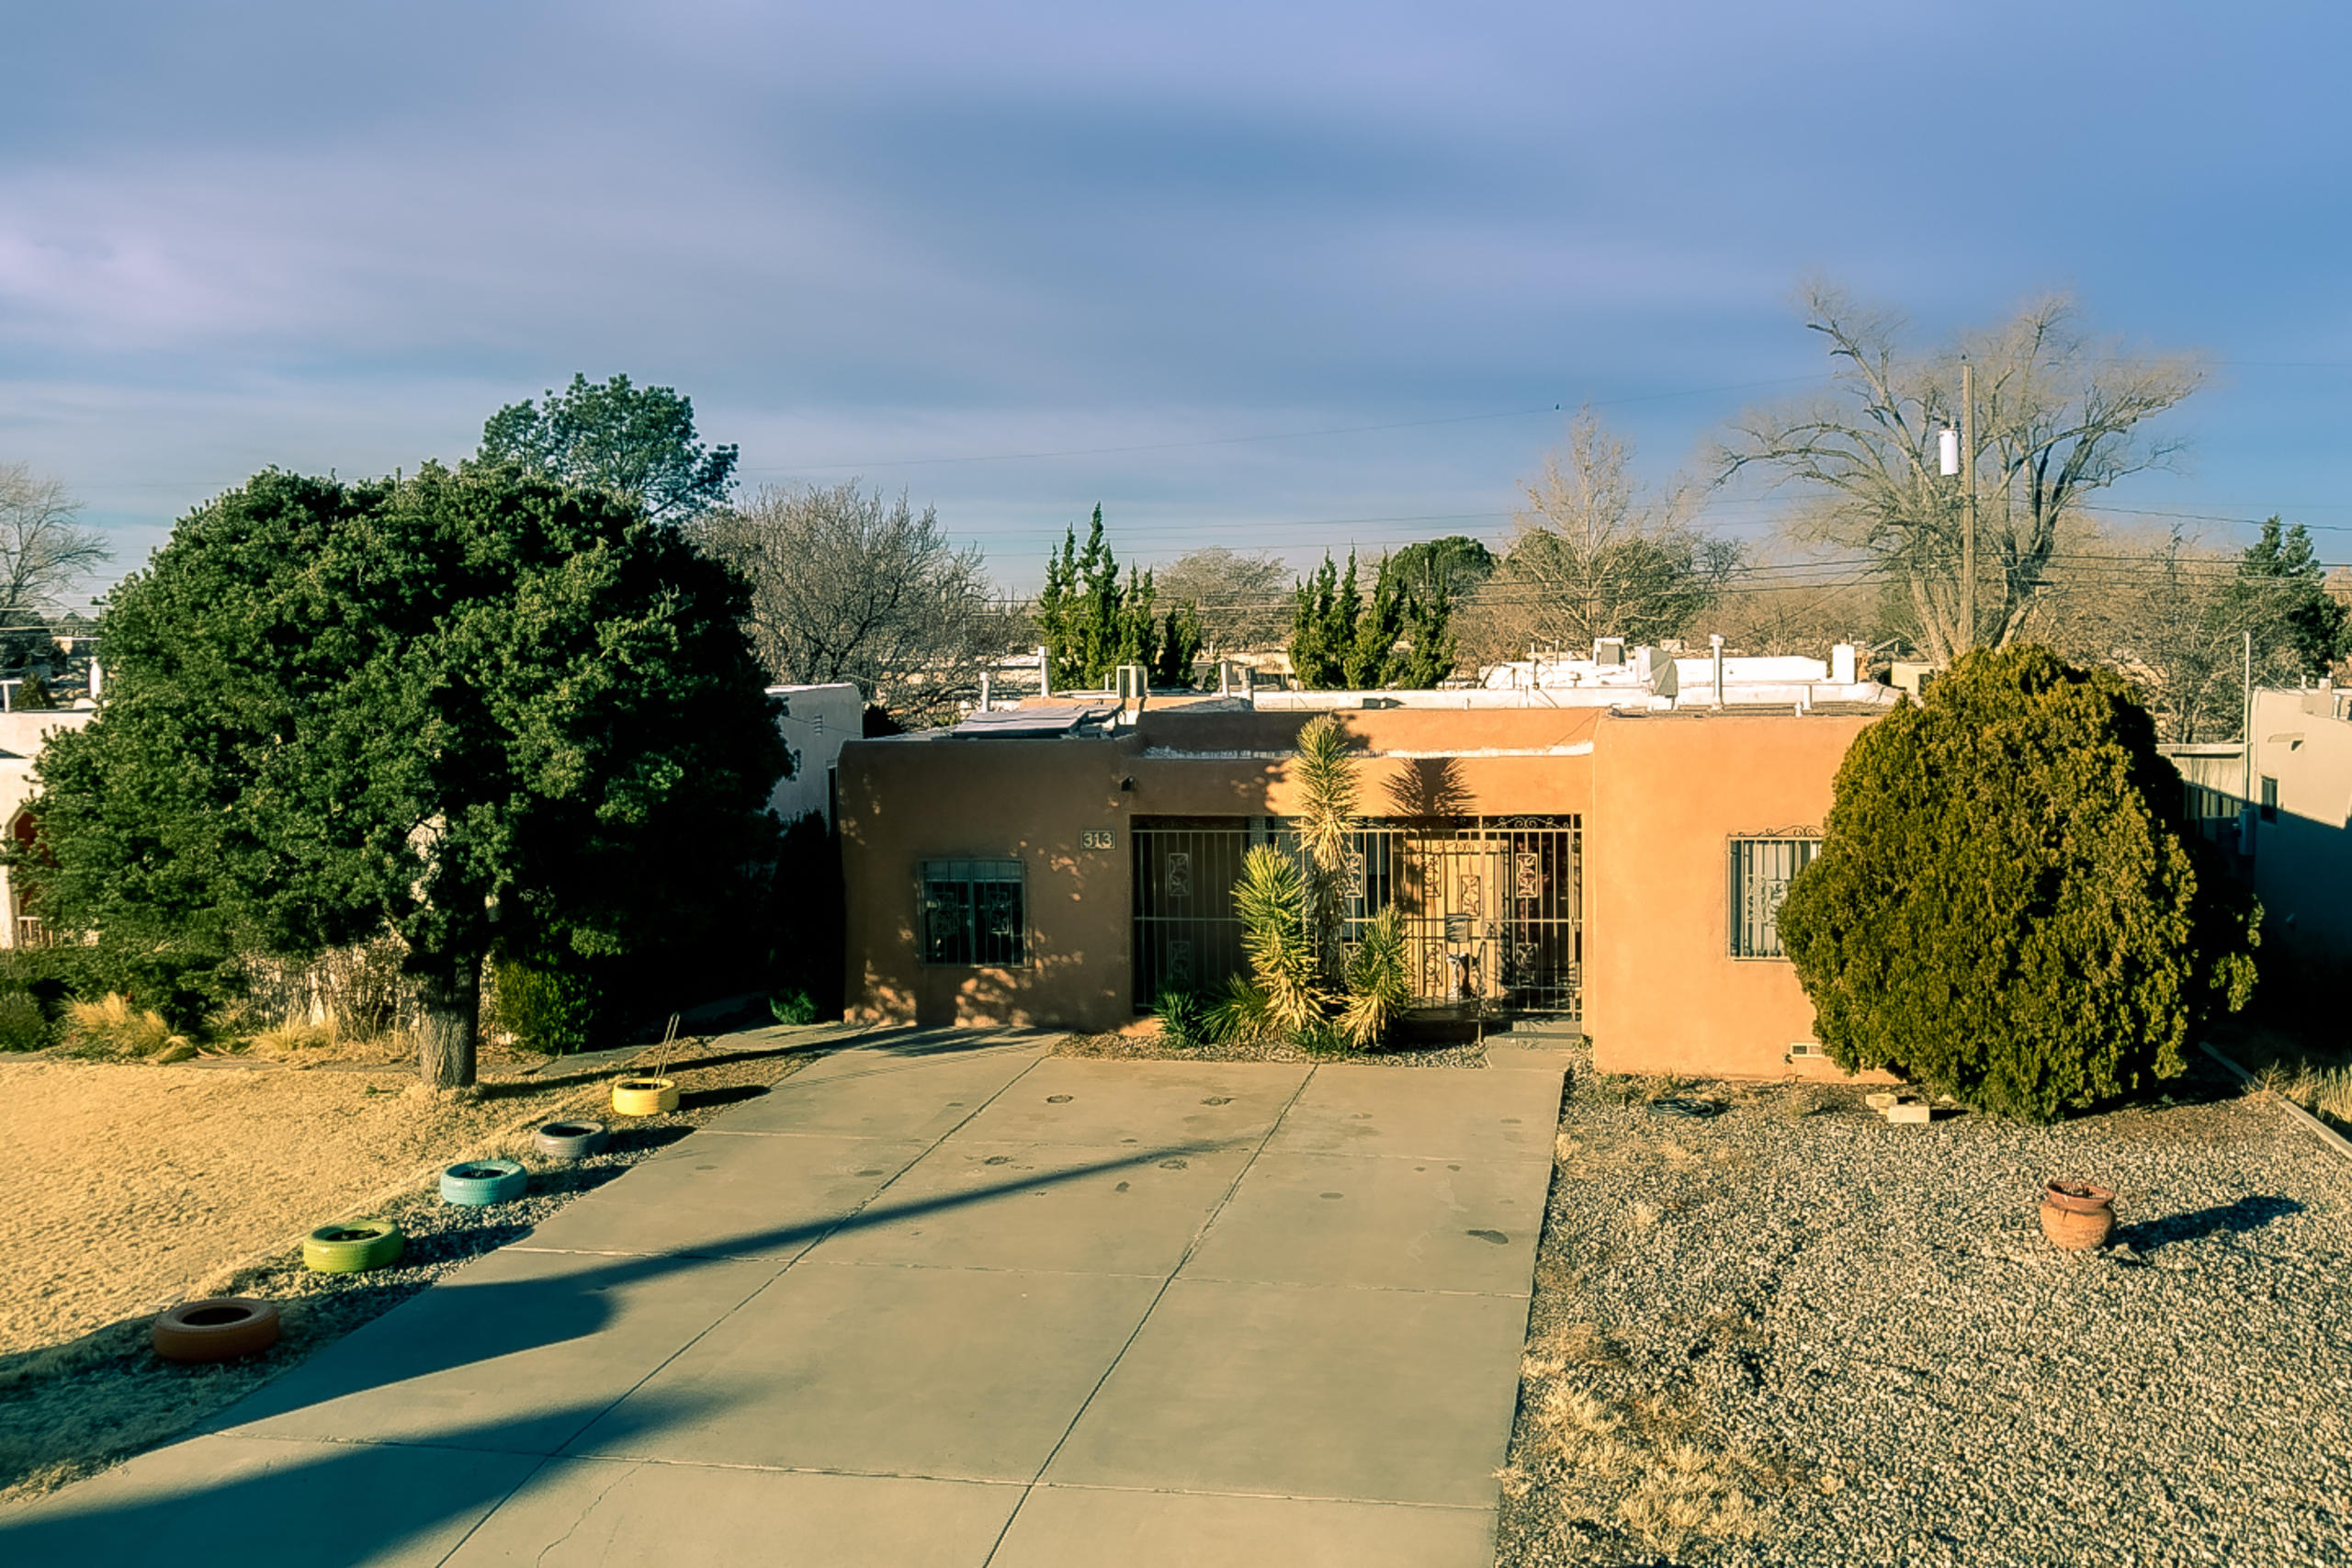 Pueblo-style home in a mature, established neighborhood that is convenient to both UNM and Uptown. Hardwood floors, coved ceilings, decorator paint colors and thermal double-pane windows. Beautifully remodeled kitchen with granite counters, subway tile and pull-out drawers. Formal living room + oversized den with cork flooring. Two bedrooms share a remodeled full bath + additional bed and bath suite with two skylights and separate outside entrance. Refrigerated air + two mini-splits. Secure, gated front porch + security bars on windows. Large backyard features covered patio with sun shade, open patio, wood fencing and storage building. Off-street parking for 3 cars. Impeccably maintained.